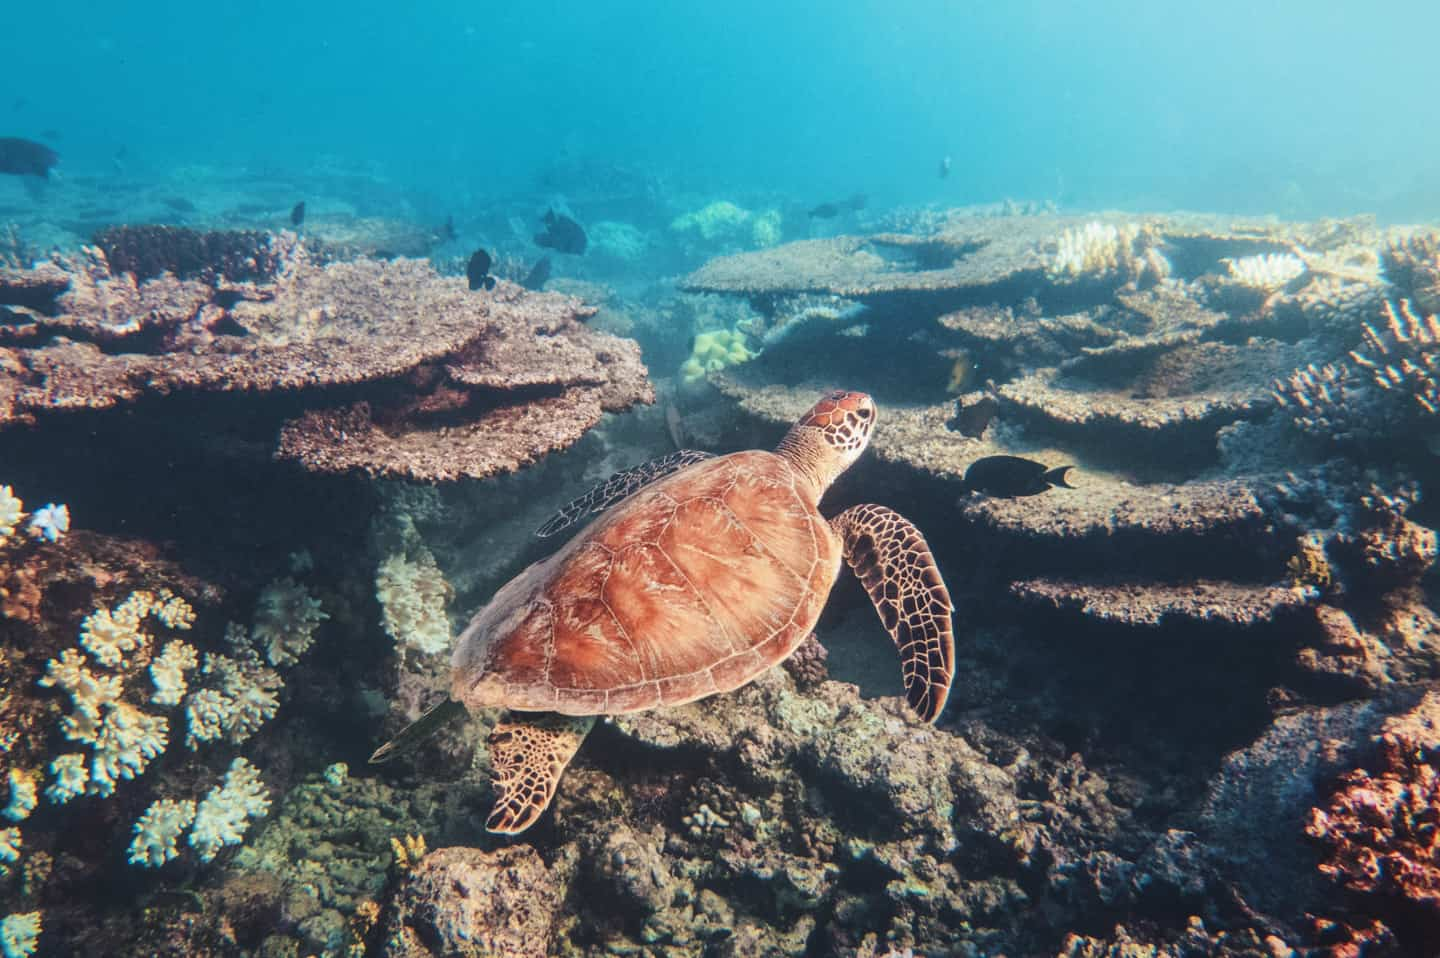 A turtle swimming over coral seen while diving on the Great Barrier Reef Cairns